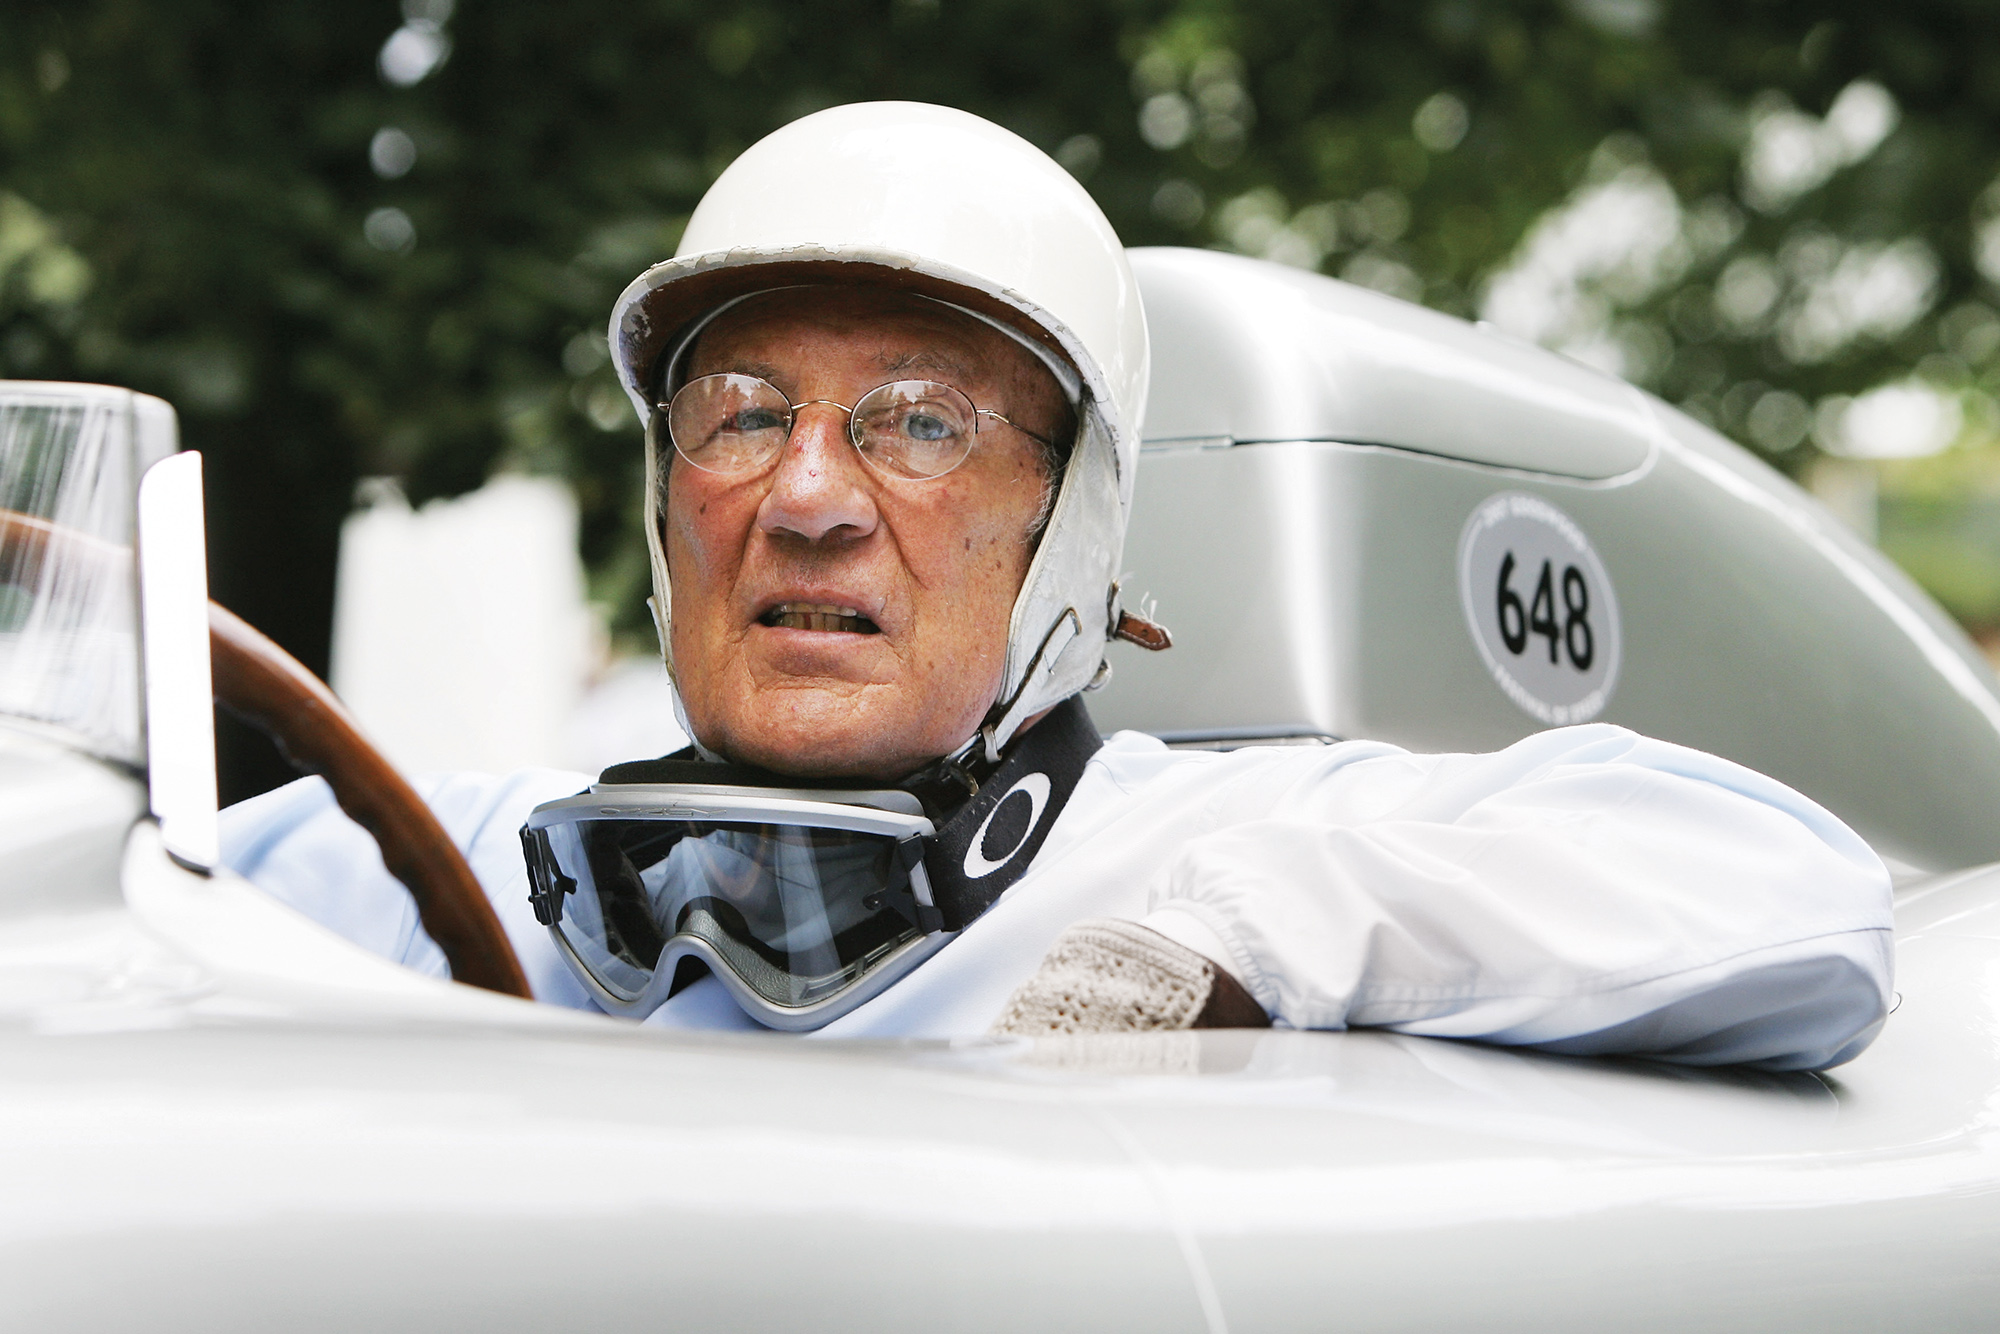 Stirling Moss in 2007